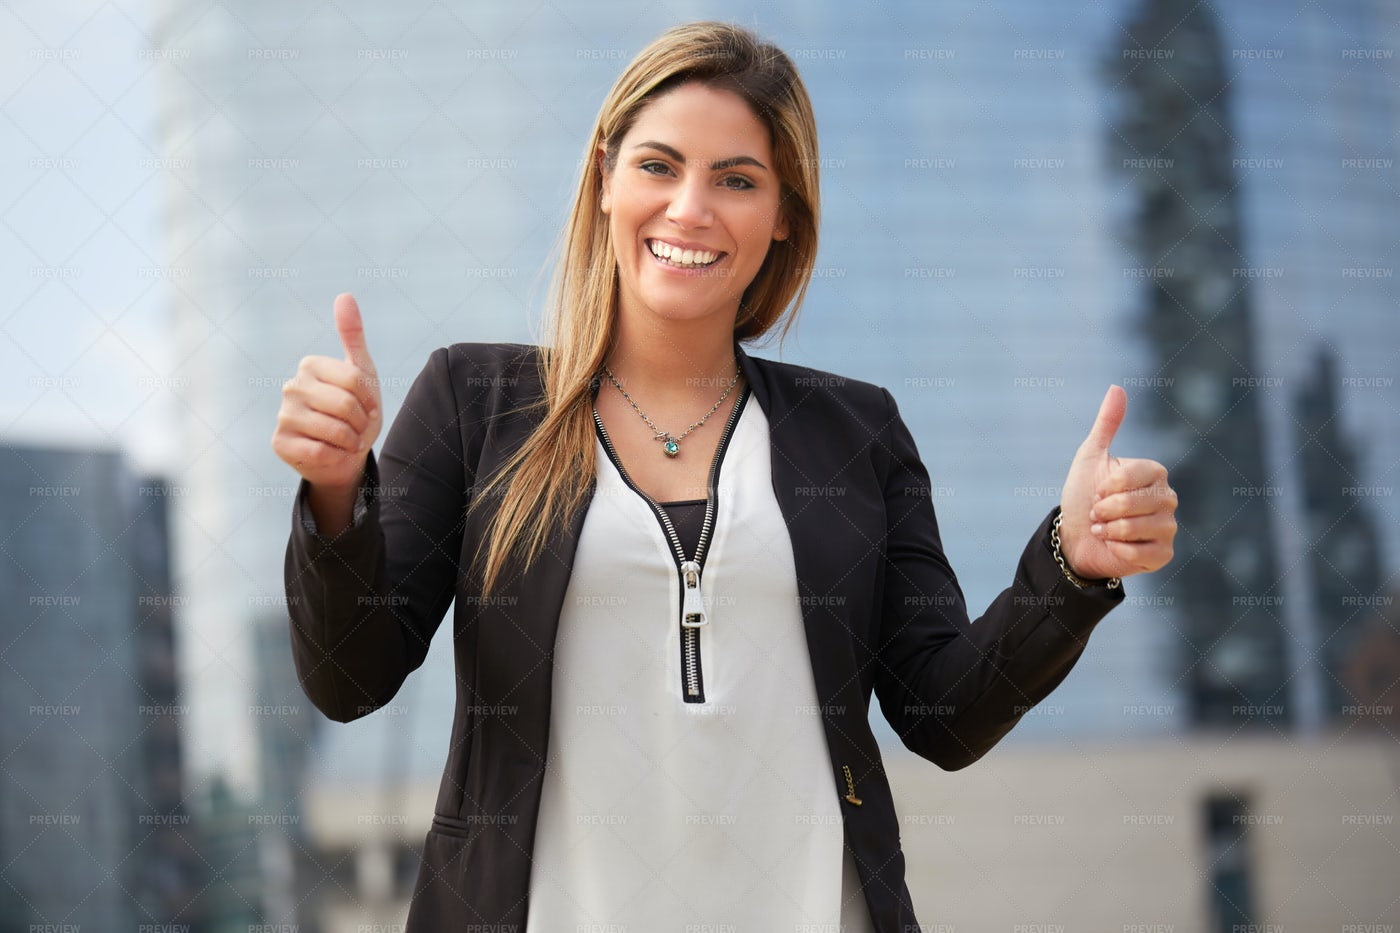 It's A Thumbs Up: Stock Photos